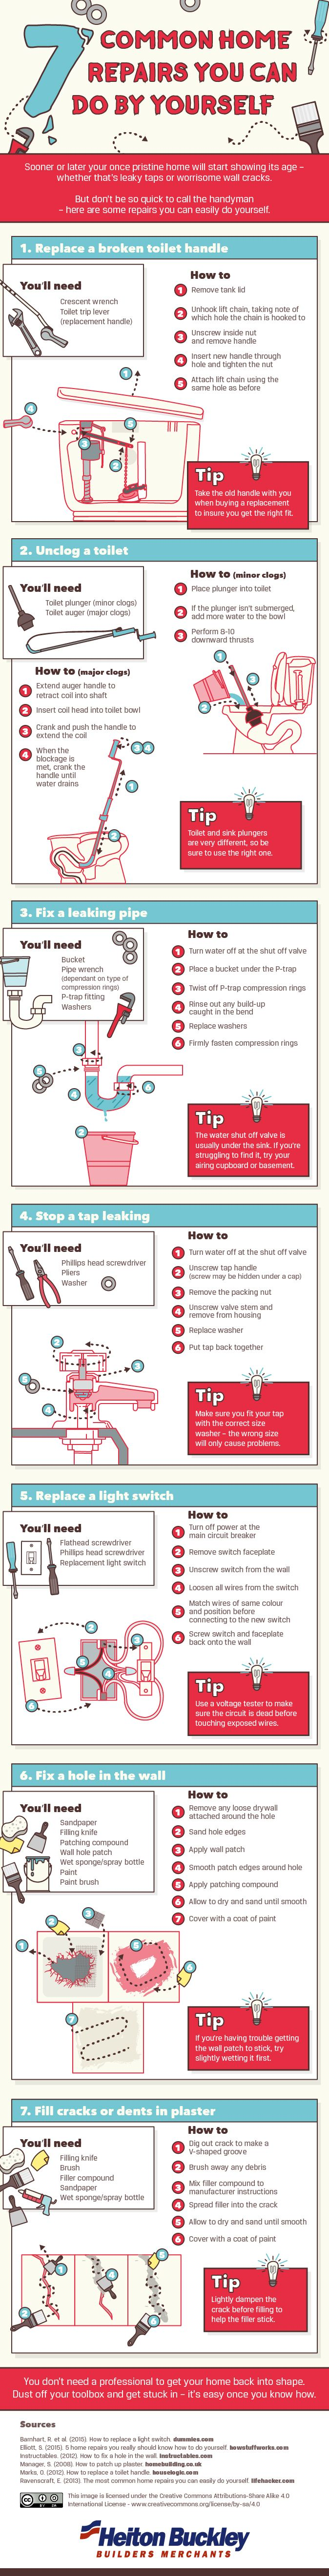 7 Common Home Repairs You Can Do By Yourself #infographic #DIY #Home